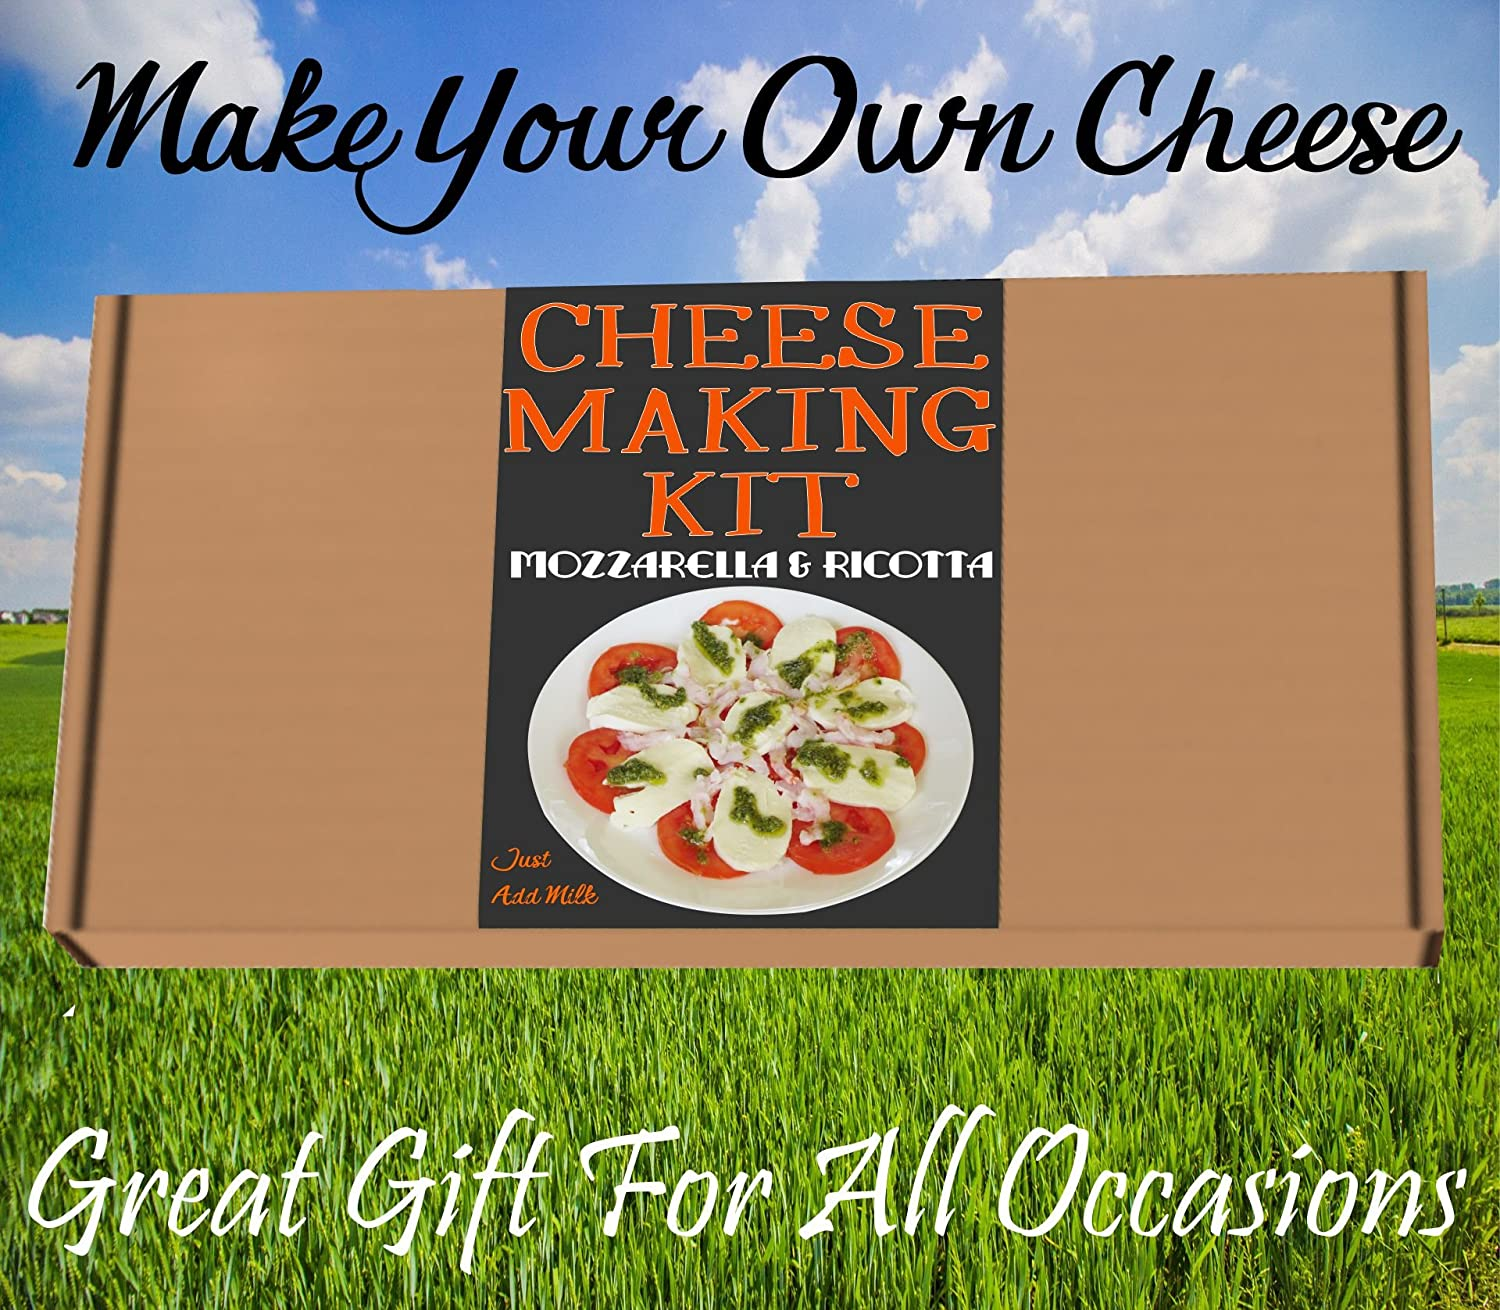 Cheese Making KIT Authentic Italian Mozzarella & Ricotta=Great Gift=Make Your Own Cheese best4kits